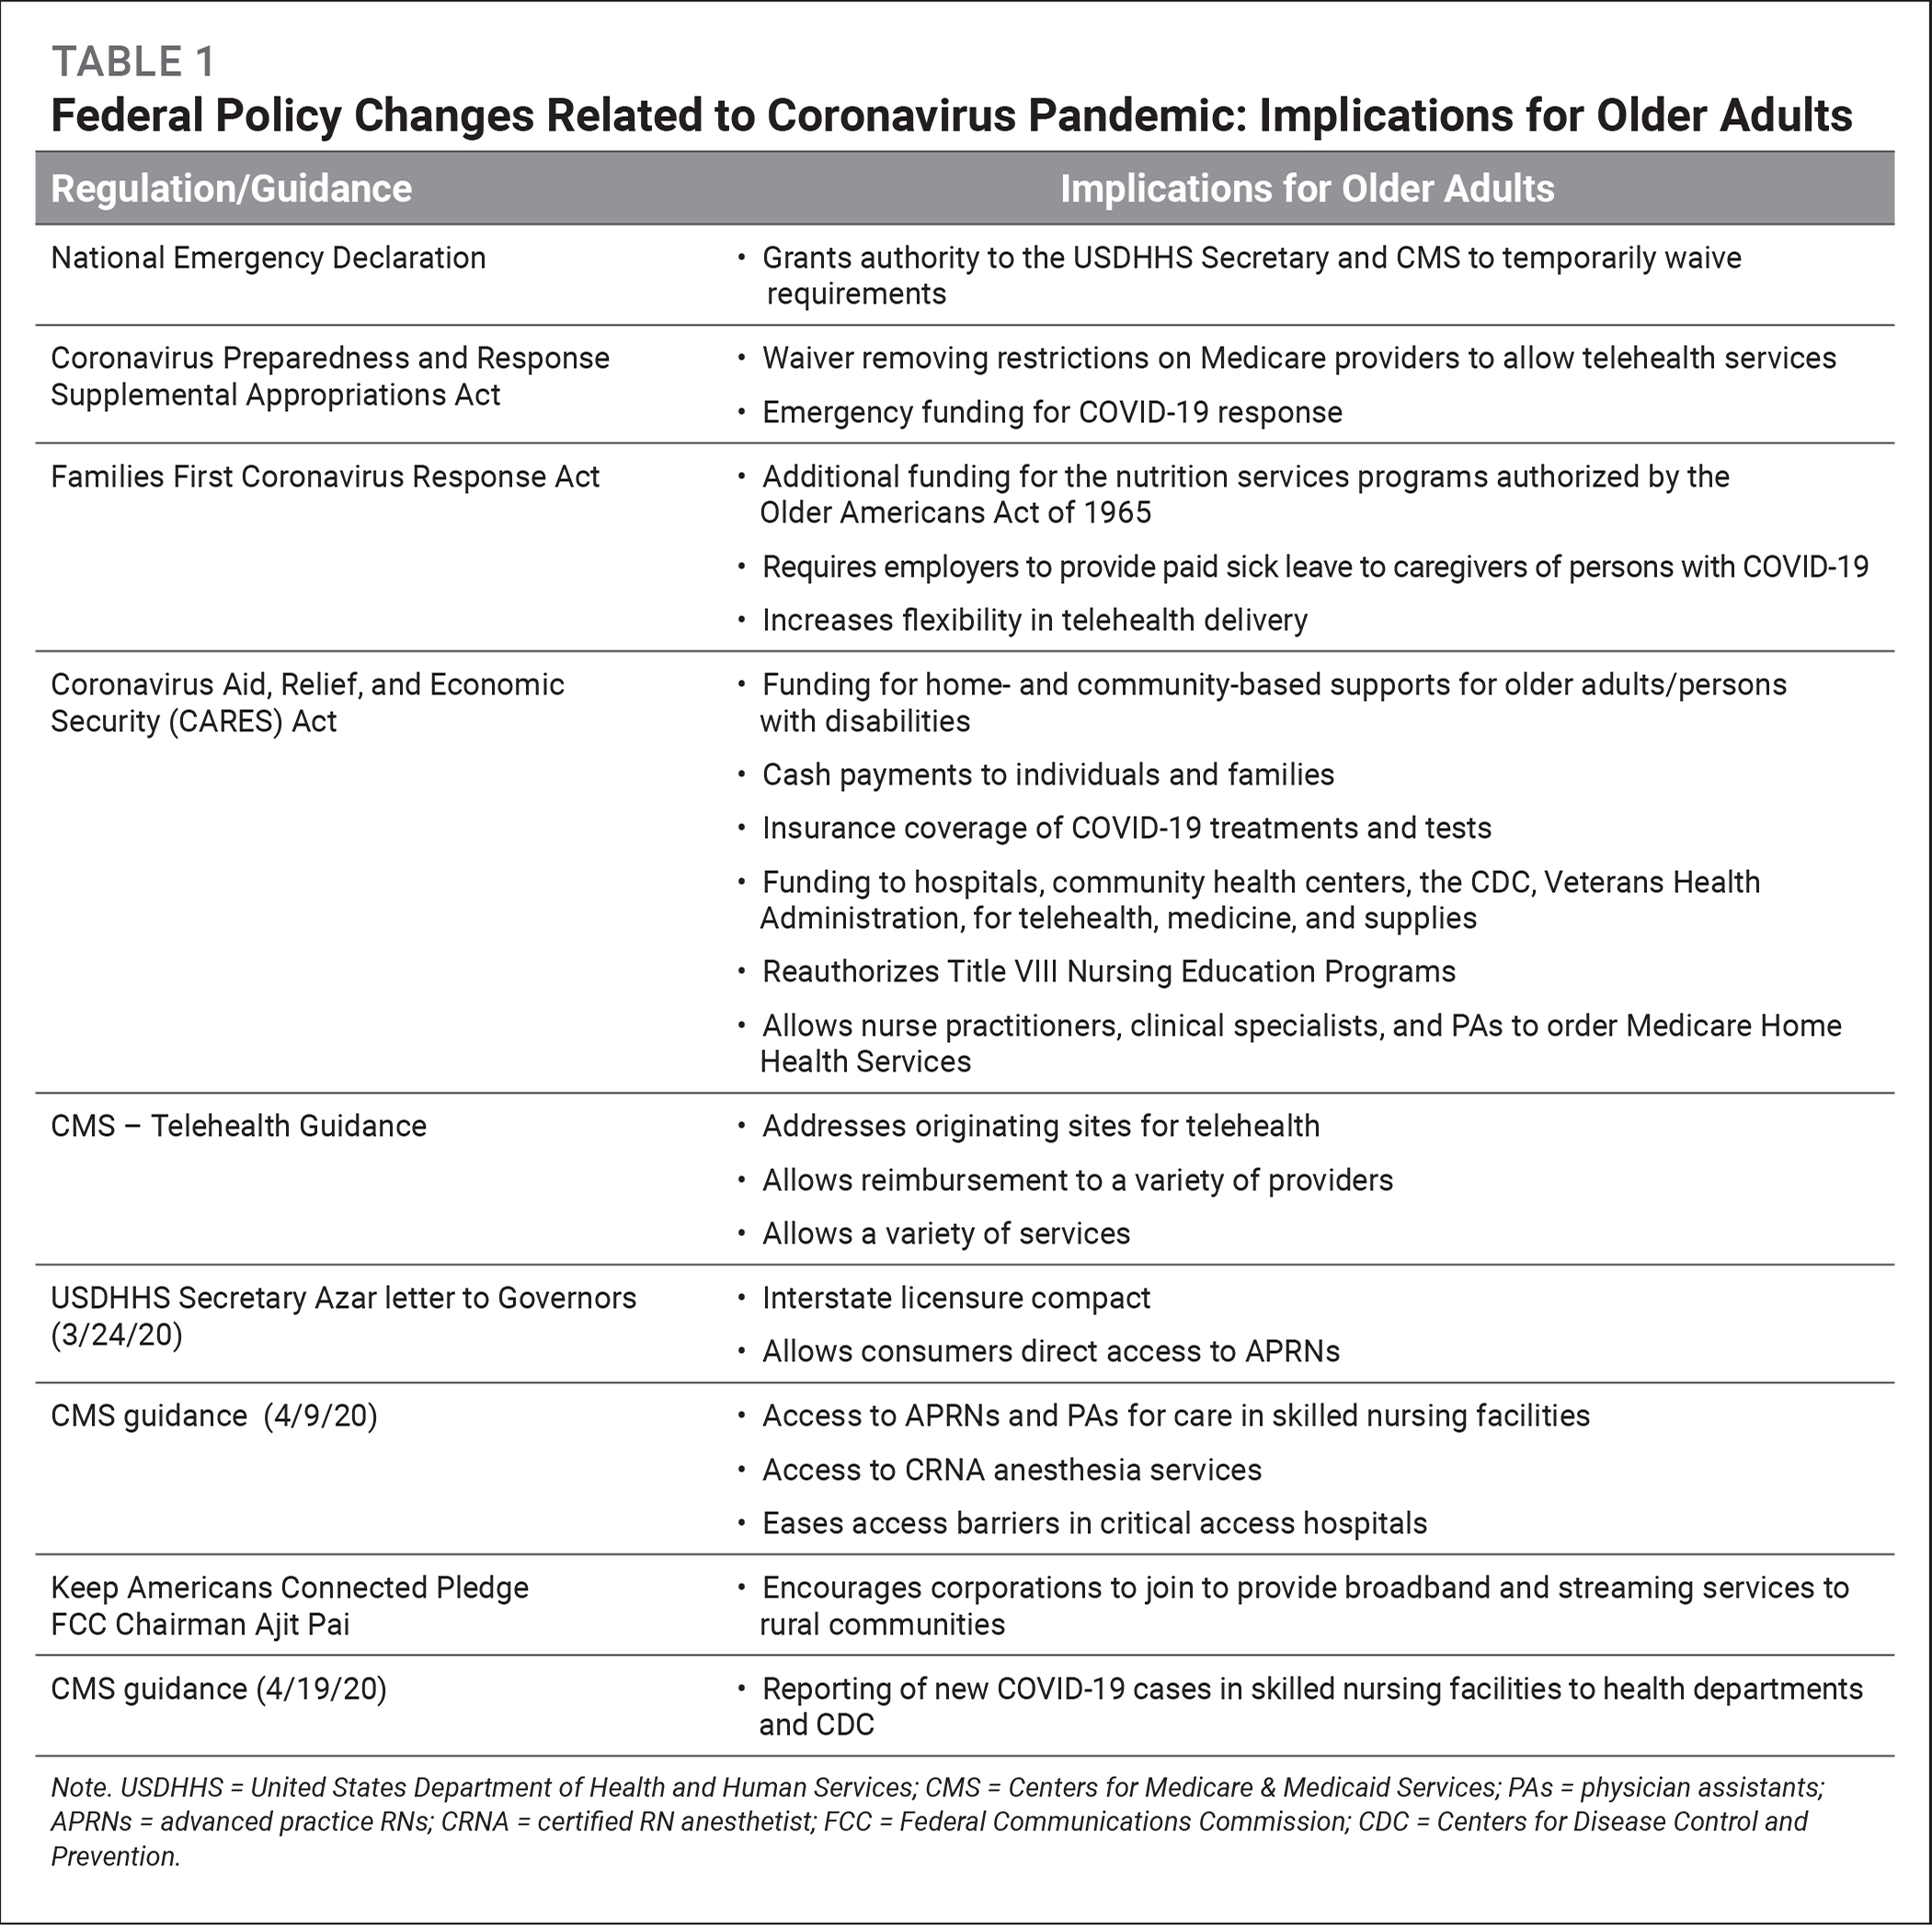 Federal Policy Changes Related to Coronavirus Pandemic: Implications for Older Adults